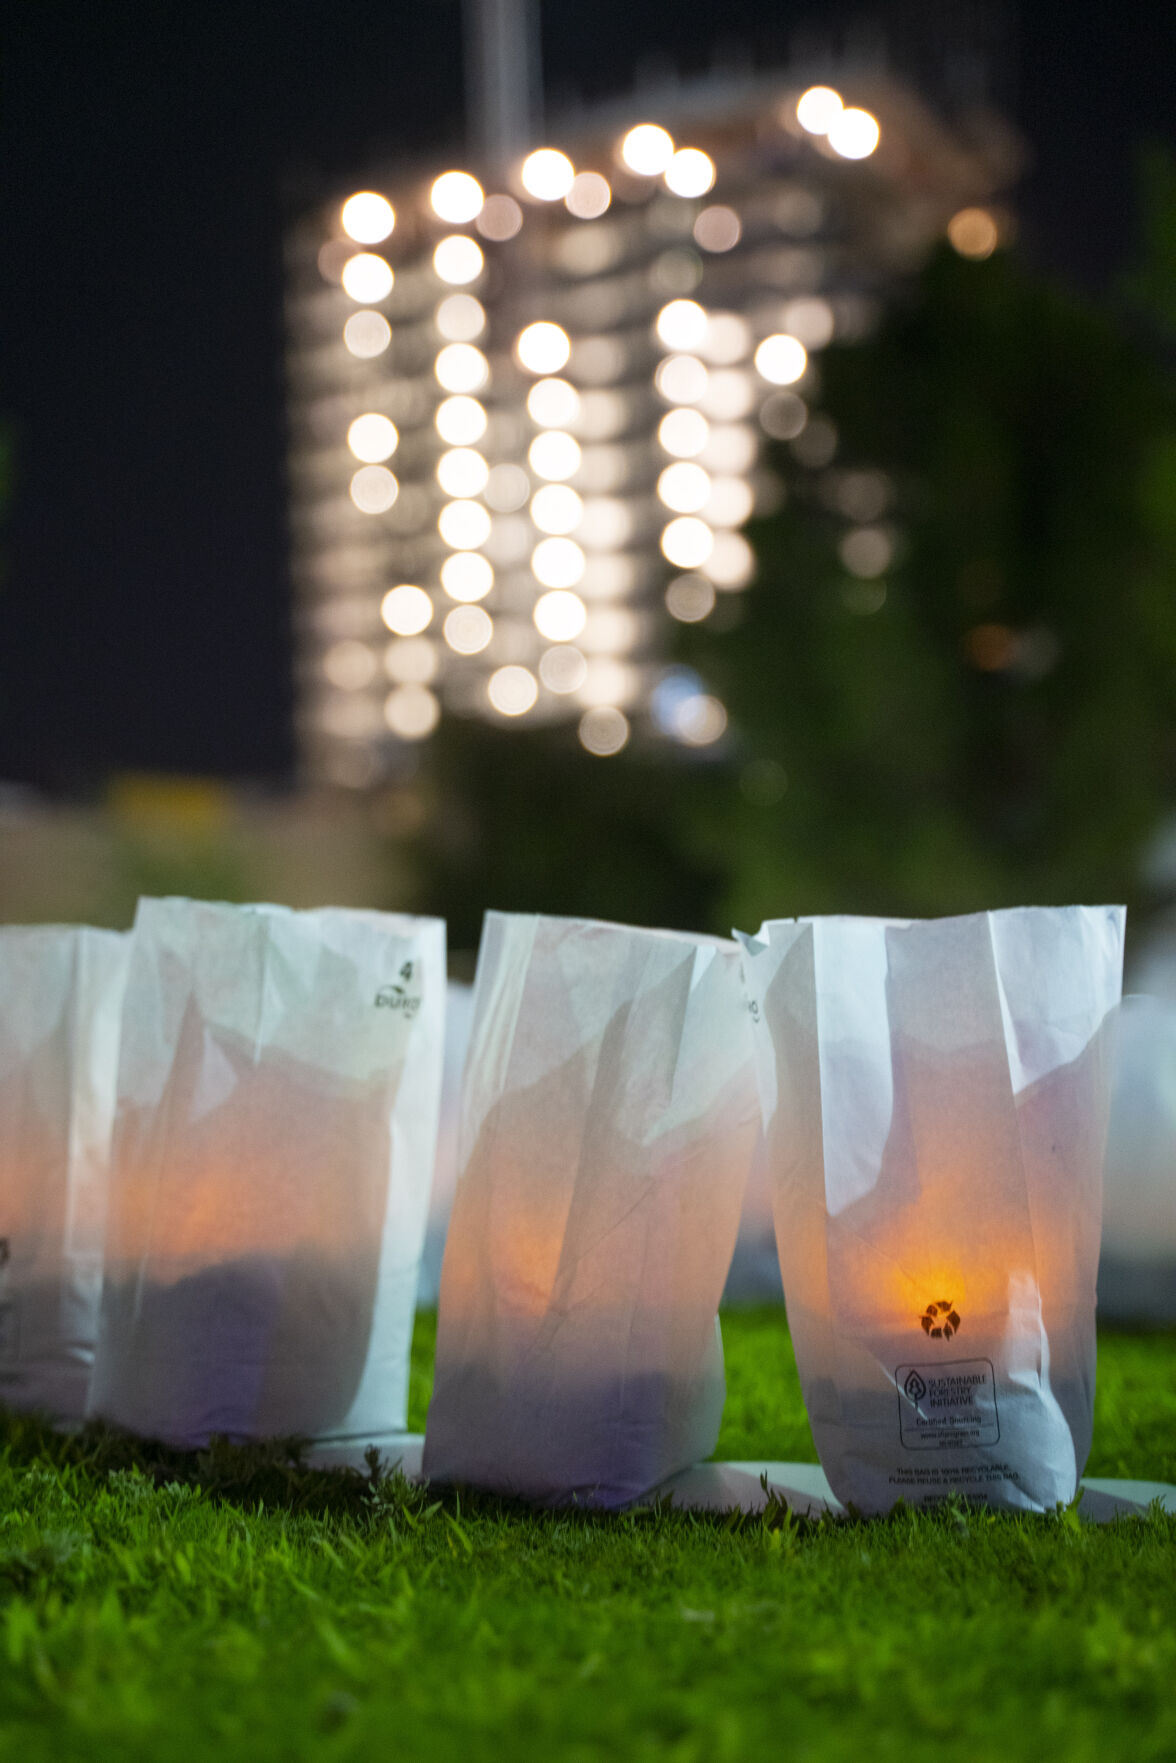 23 Luminarias Lit for Victims of August 3 Shooting